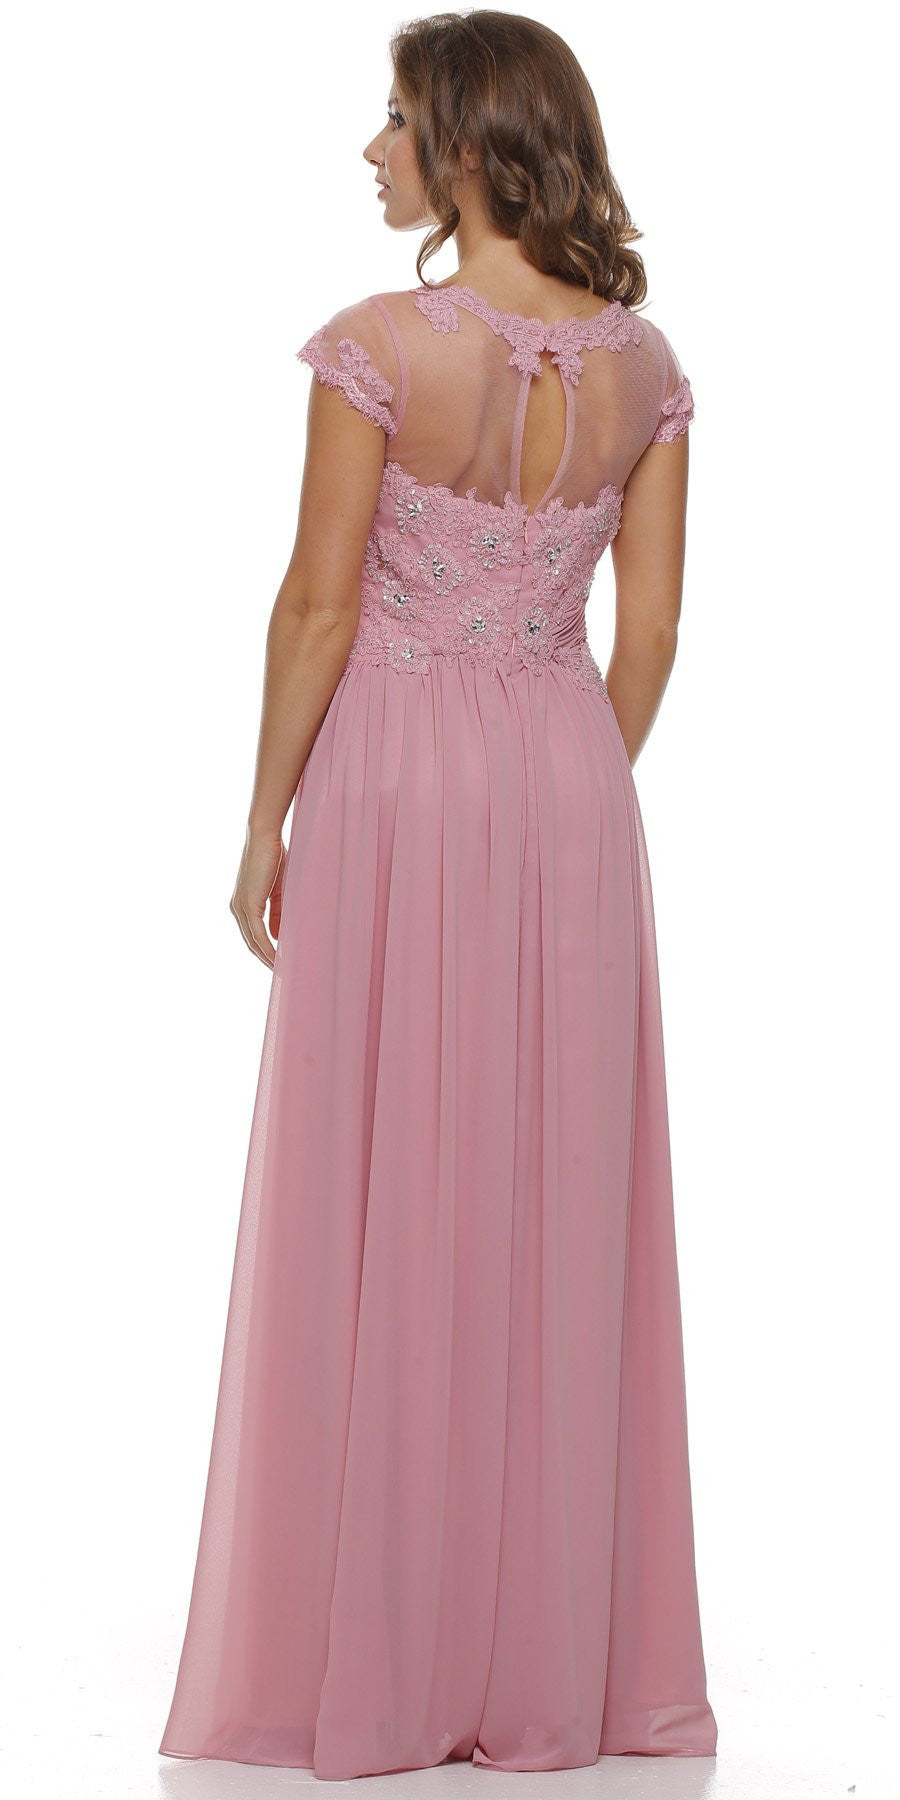 Jewel Neck Keyhole Back Dusty Rose A Line Cotillion Dress Back